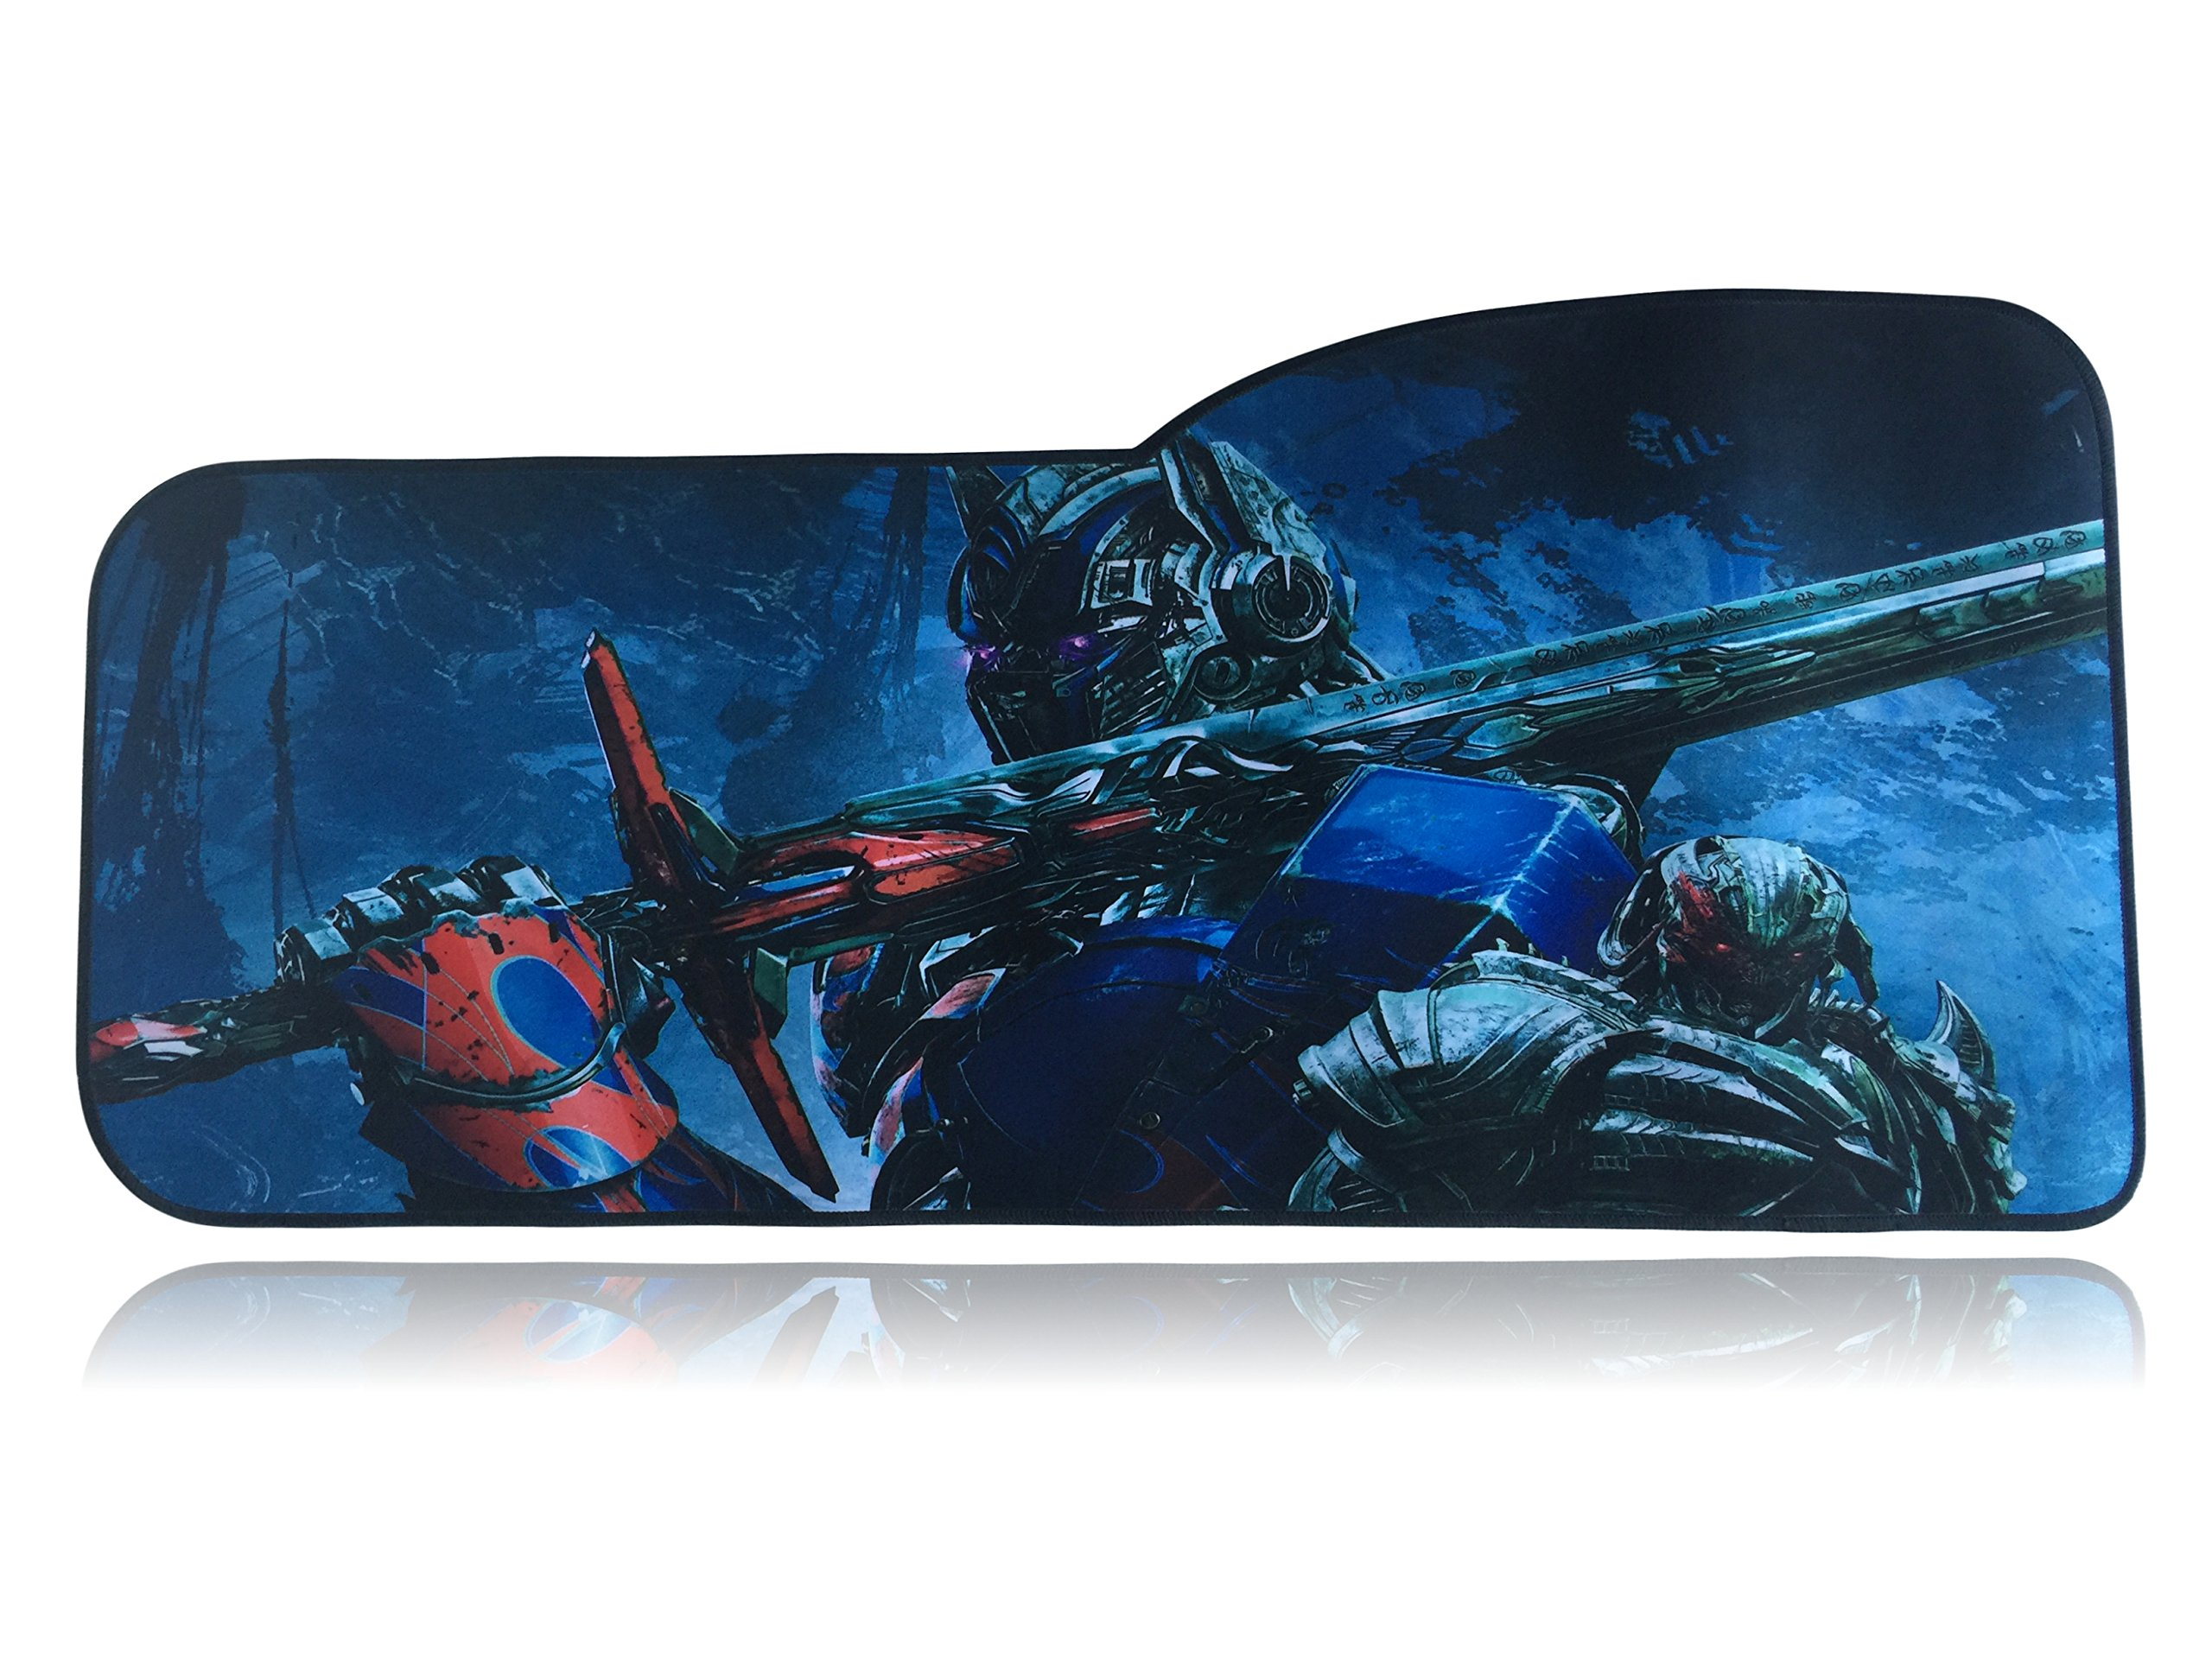 Transformers Extended Size Custom Professional Gaming Mouse Pad - Anti Slip Rubber Base - Stitched Edges - Large Desk Mat - 28.5'' x 12.75'' x 0.12'' (Curve, Optimus Prime)